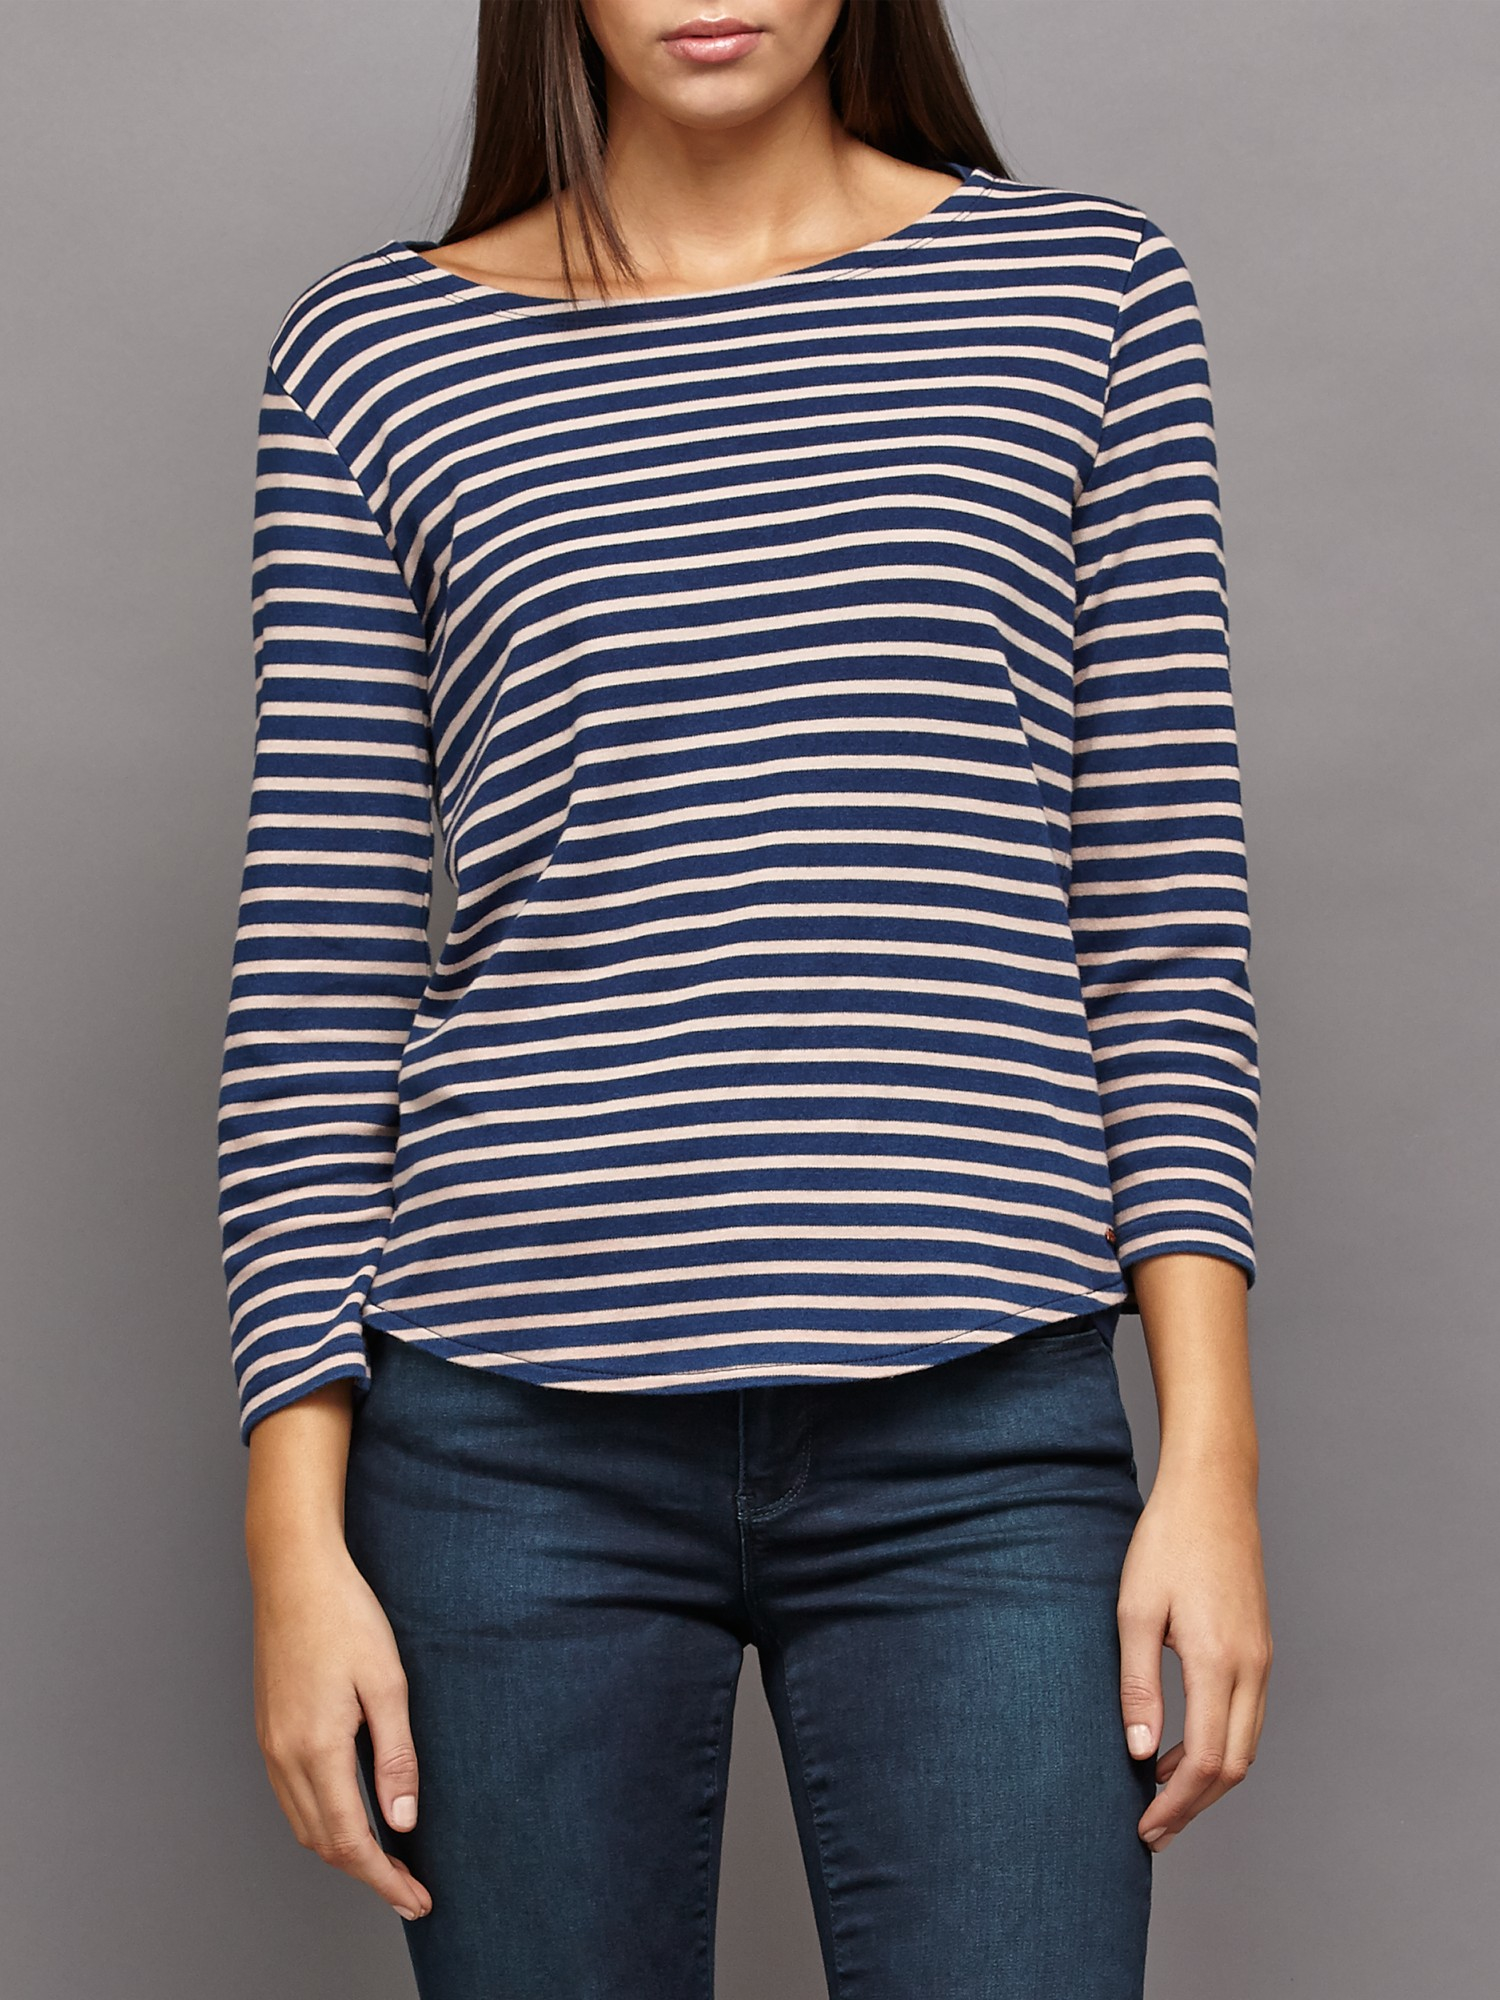 Find long sleeved breton top at ShopStyle. Shop the latest collection of long sleeved breton top from the most popular stores - all in one place.